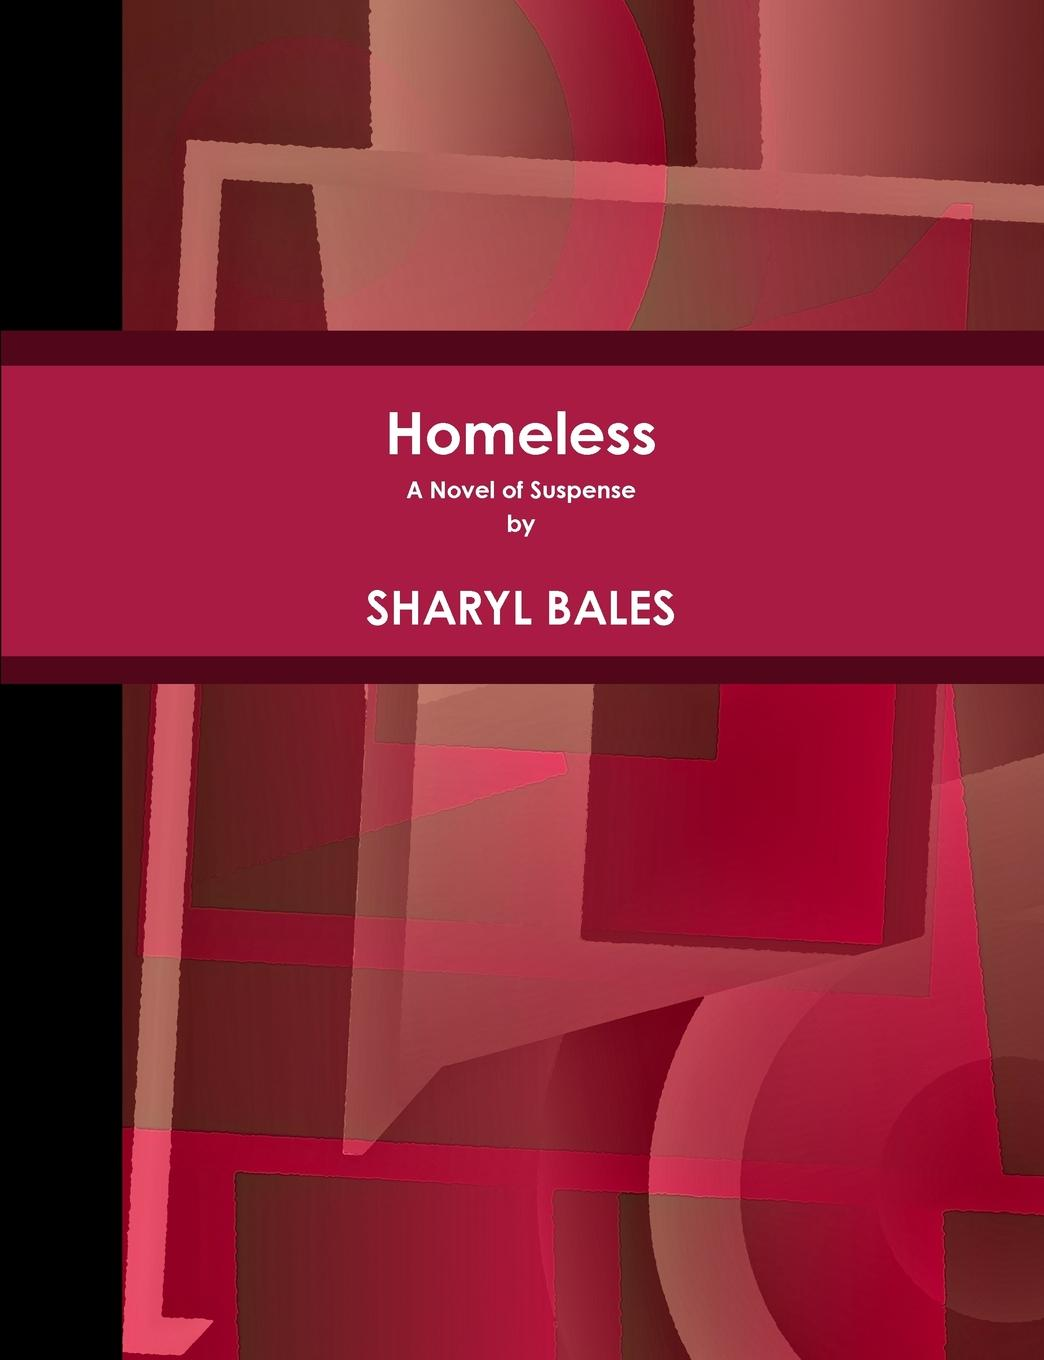 Sharyl Bales Homeless set wonders in the new year s plaid